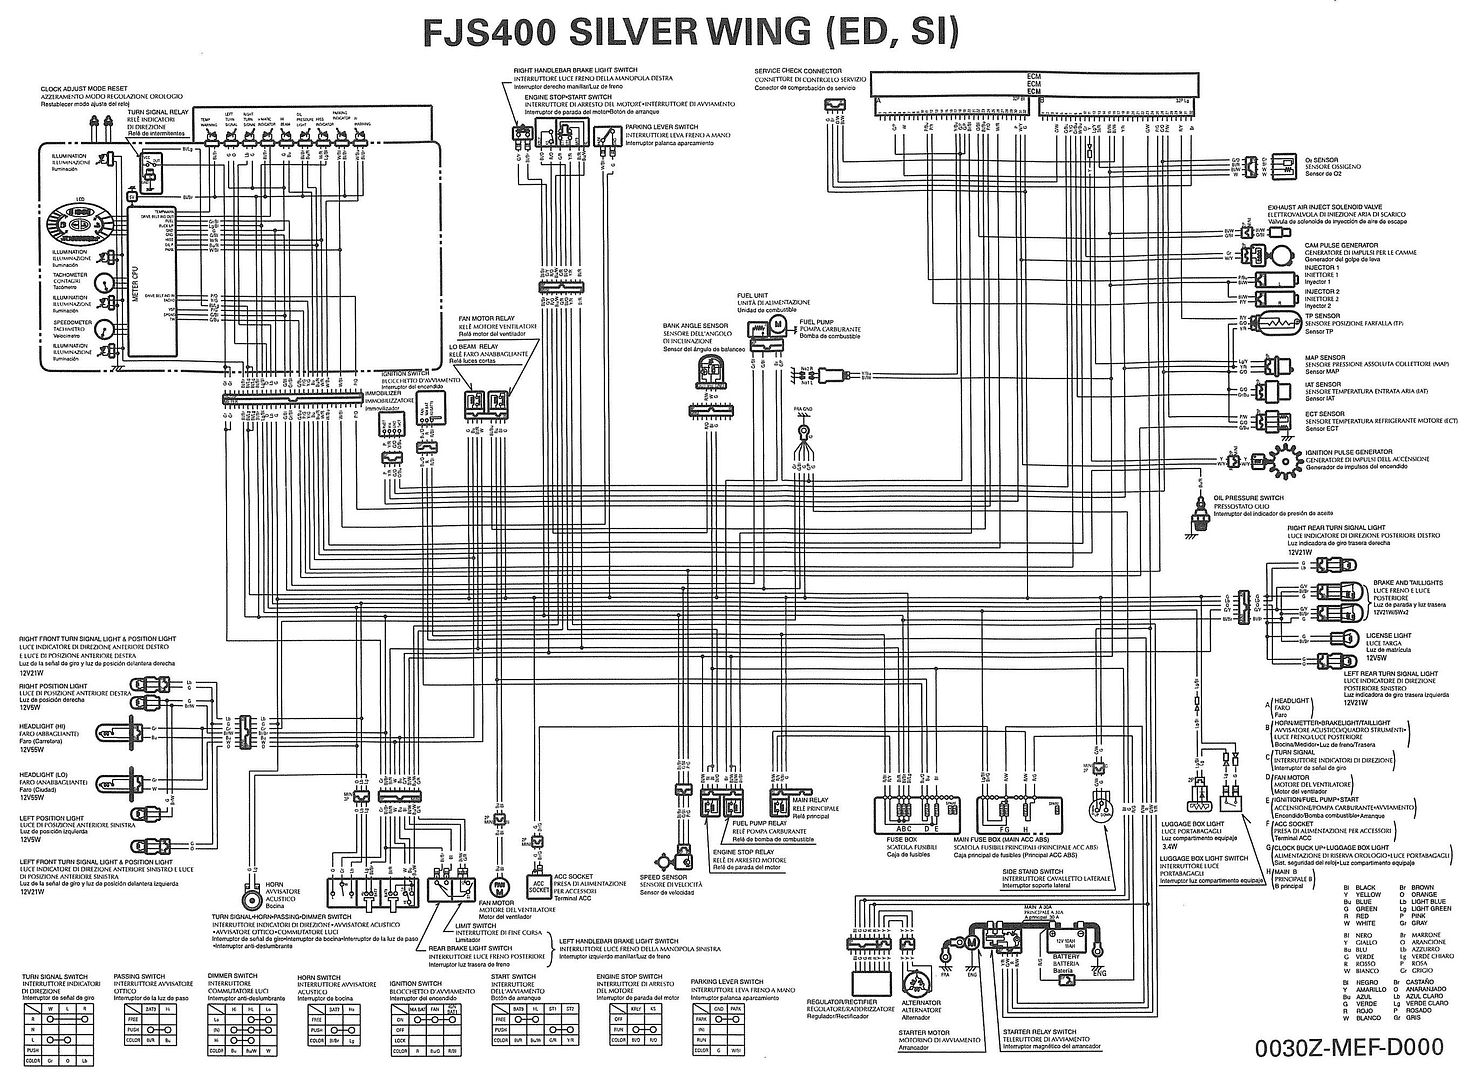 DIAGRAM] 2003 Honda Reflex Wiring Diagrams FULL Version HD Quality Wiring  Diagrams - GFCIWIRING.LEXANESIRAC.FR